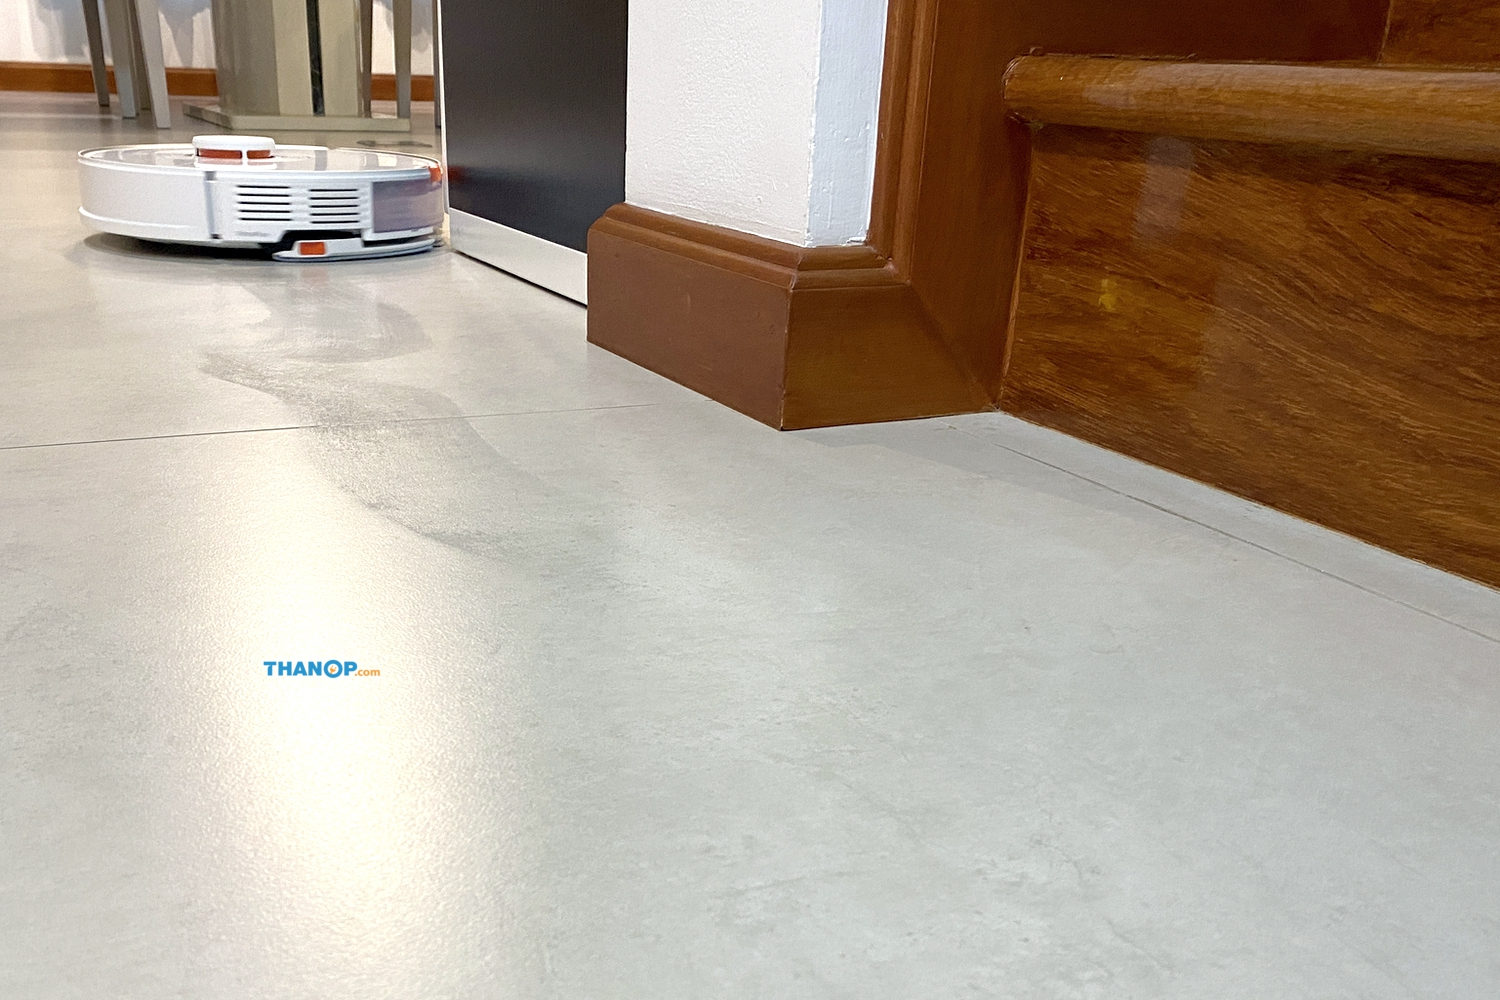 roborock-s7-working-with-mopping-function